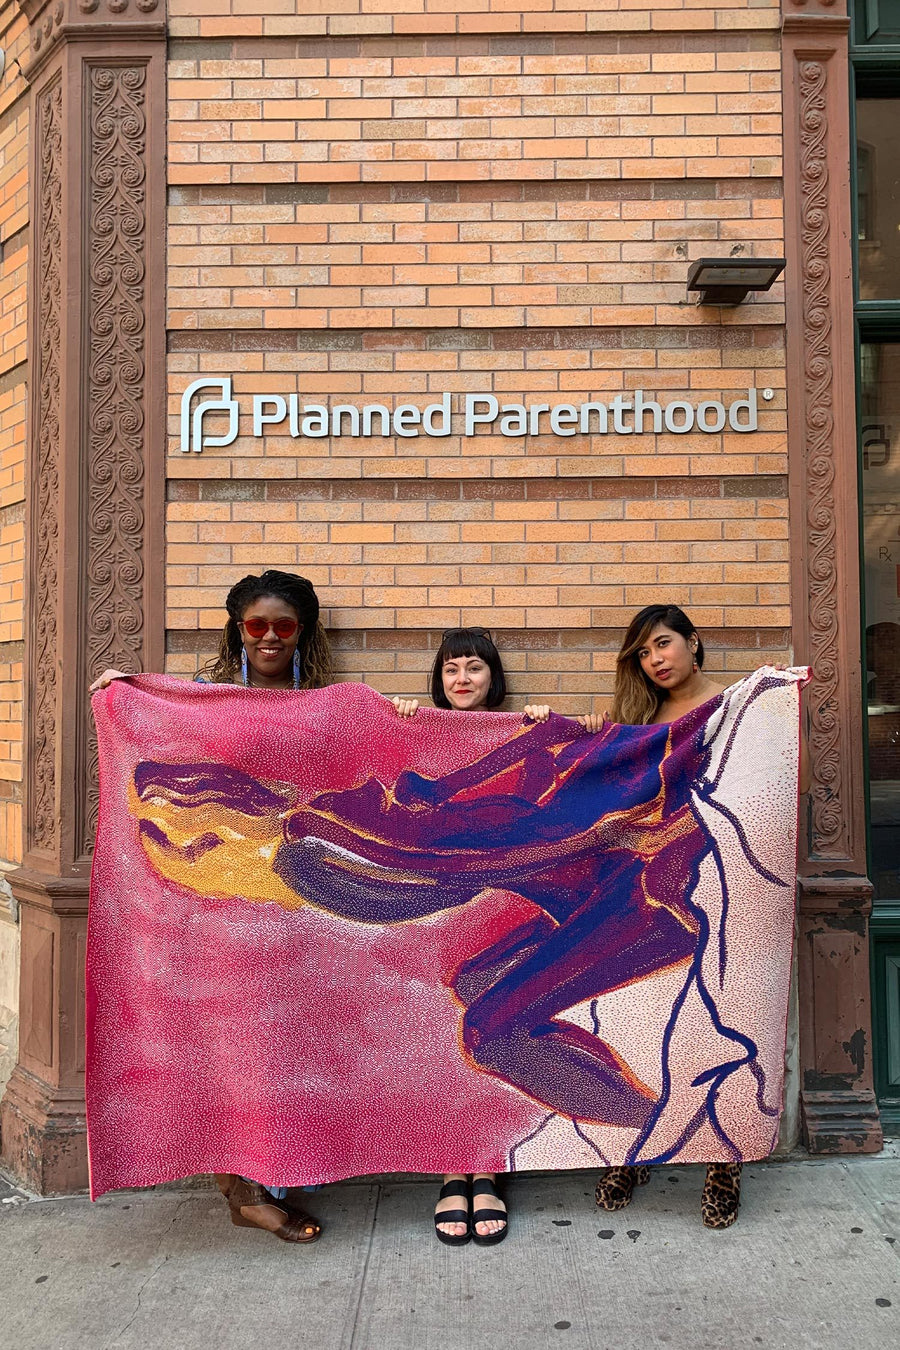 Semaine x Jemima Kirke for Planned Parenthood - The Blanket Satement